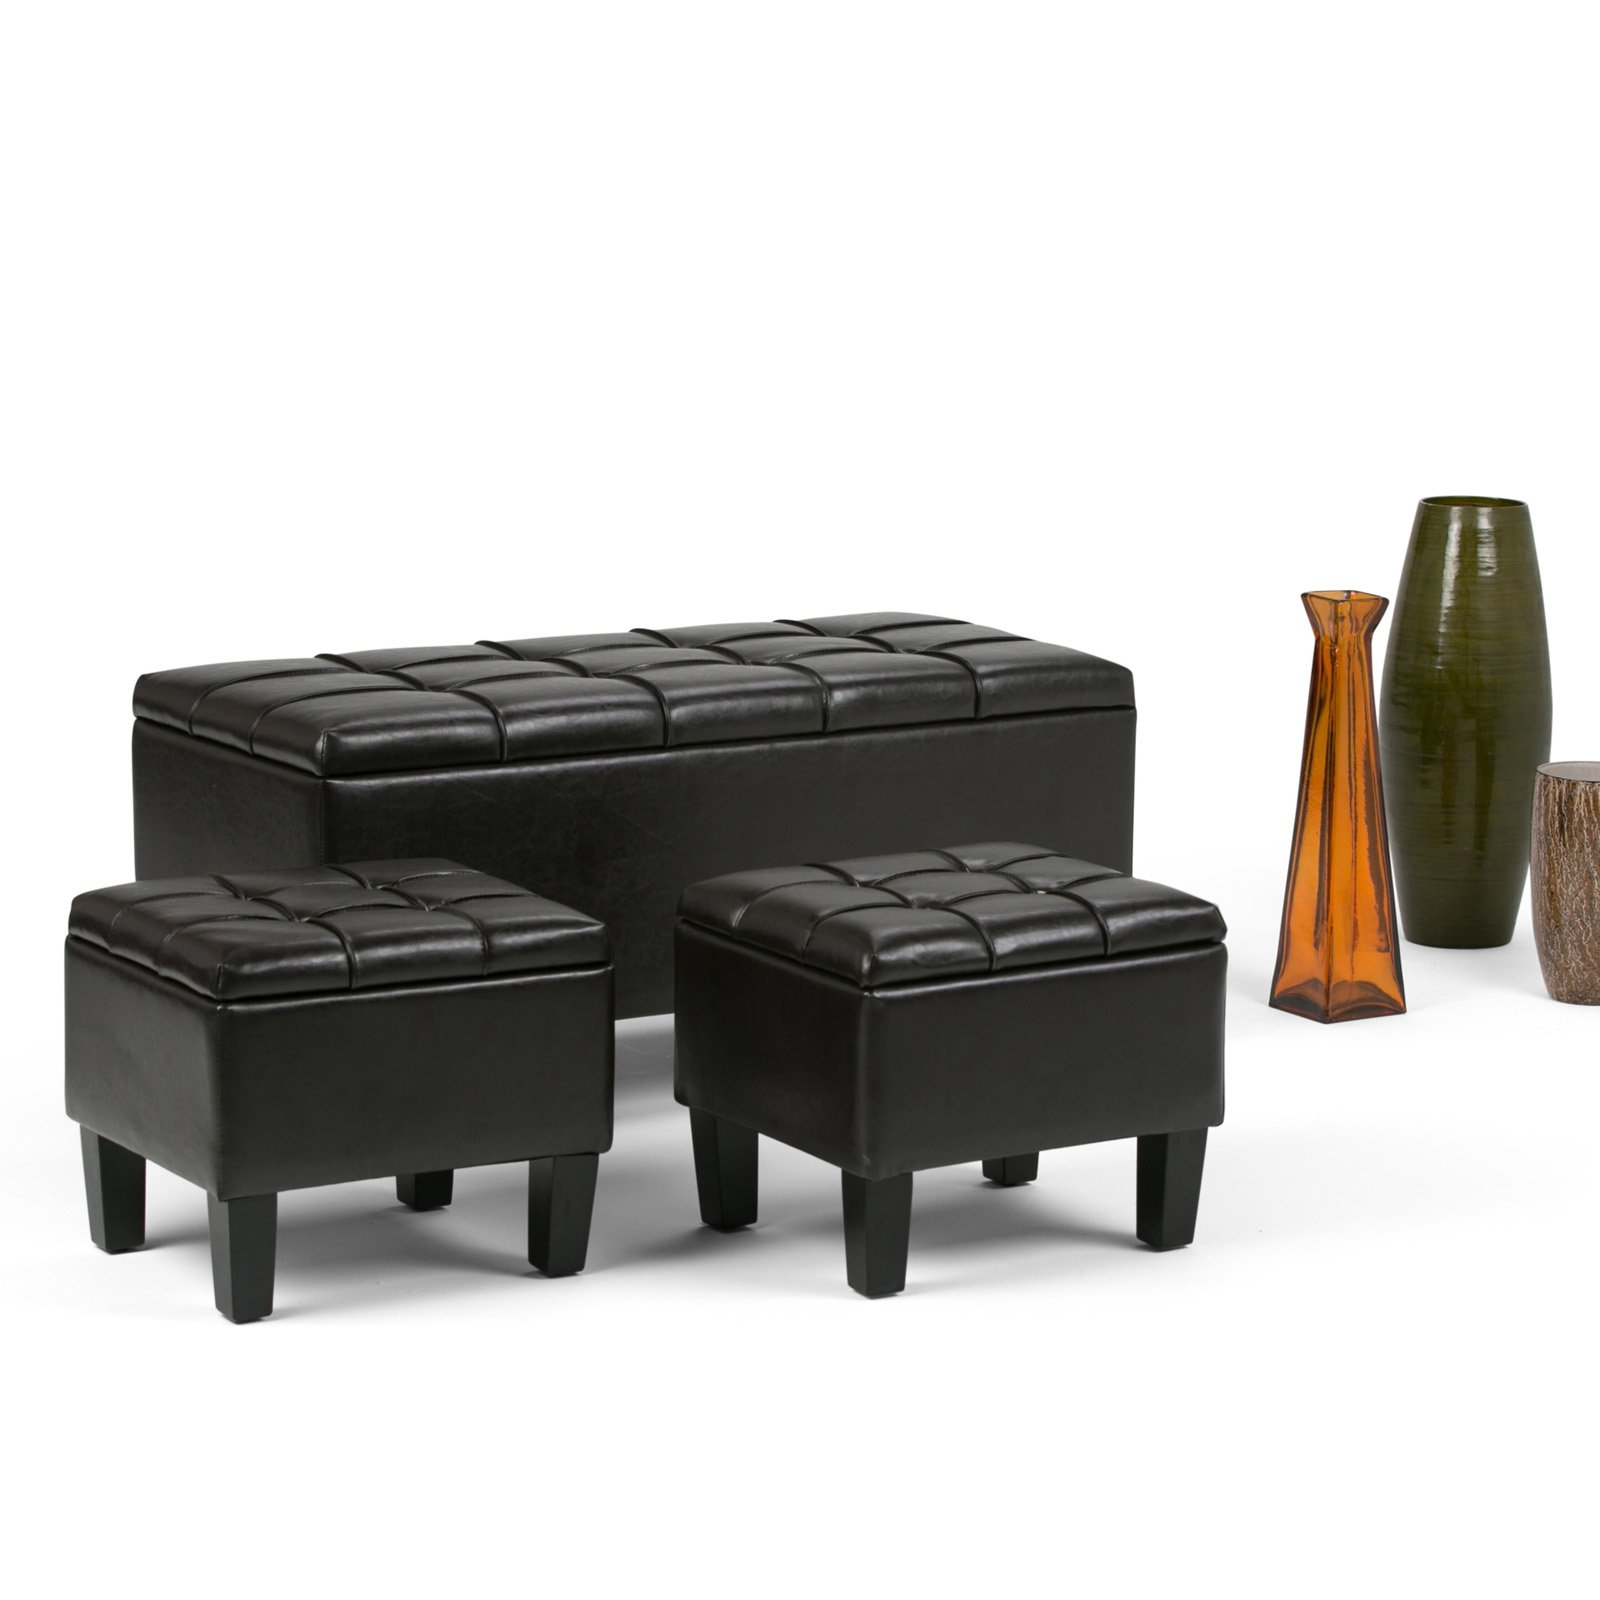 Super Simpli Home Dover 3 Piece Faux Leather Storage Bench And Ibusinesslaw Wood Chair Design Ideas Ibusinesslaworg